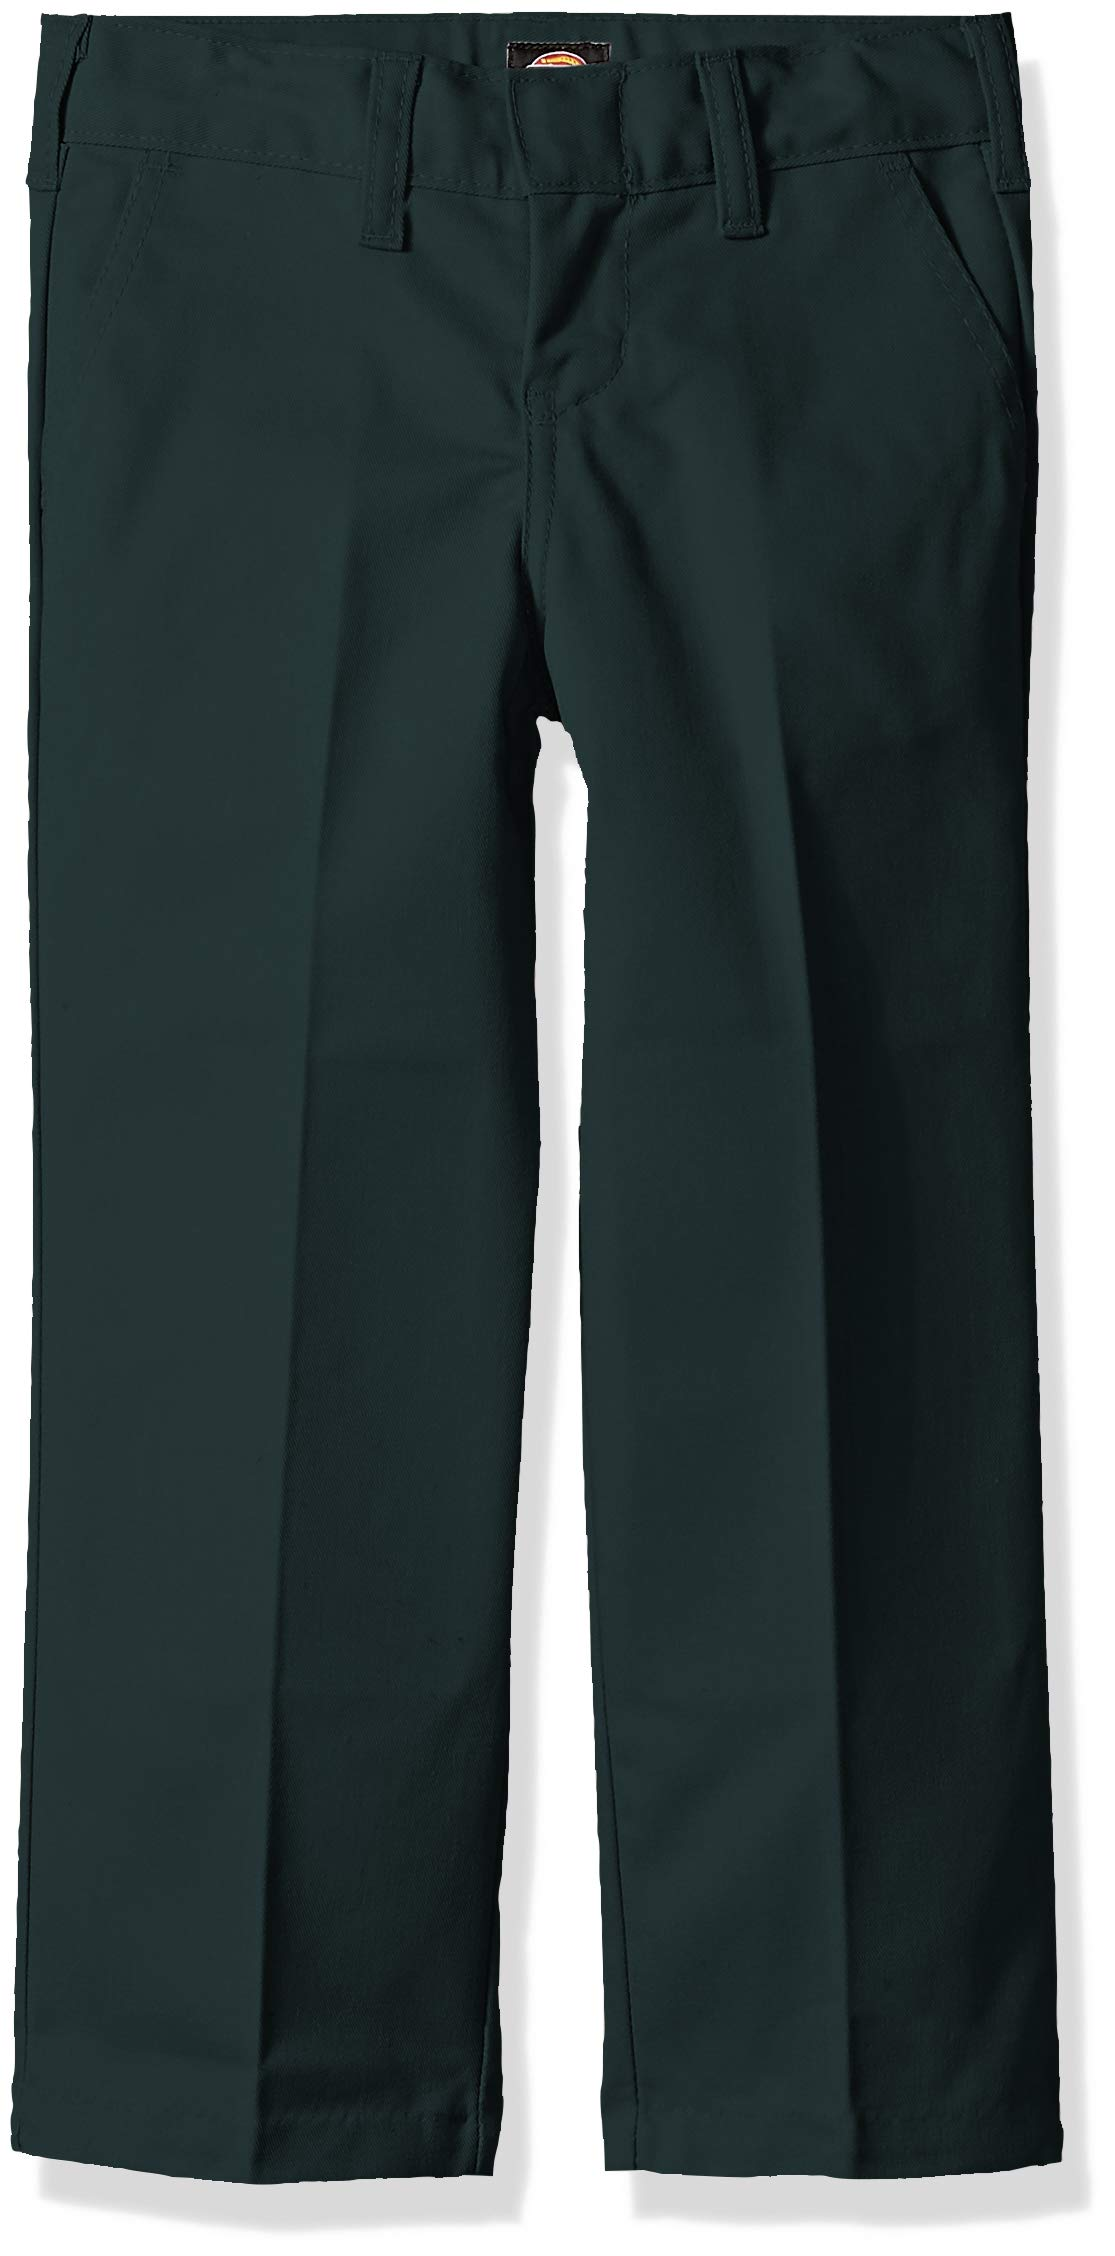 Dickies Kids Boys' Big Flexwaist Flat Front Straight Leg Pant, Hunter Green, 16 by Dickies Kids